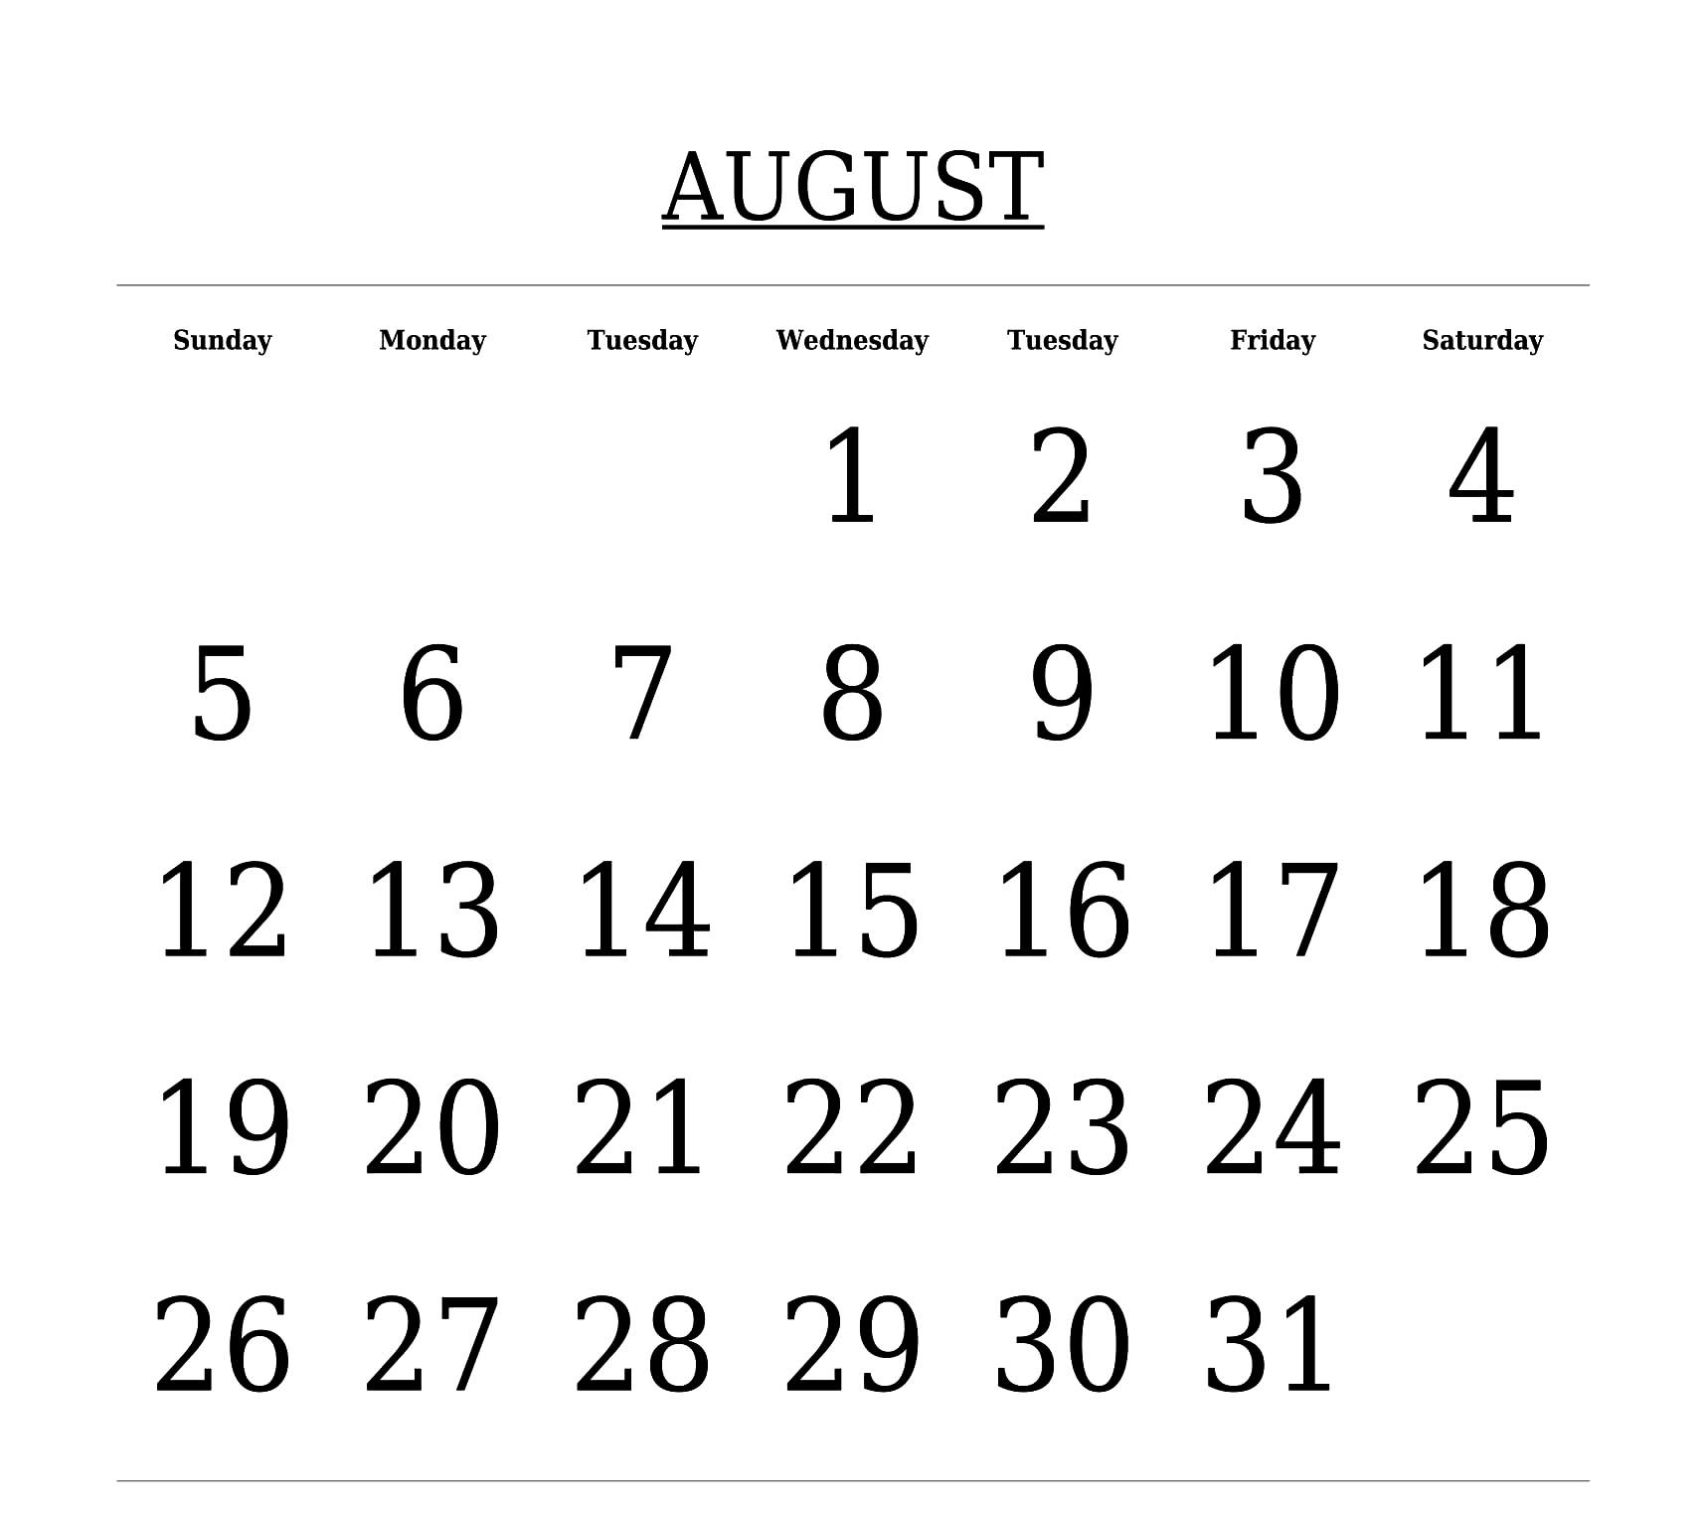 August 2018 Calendar Template In Excel